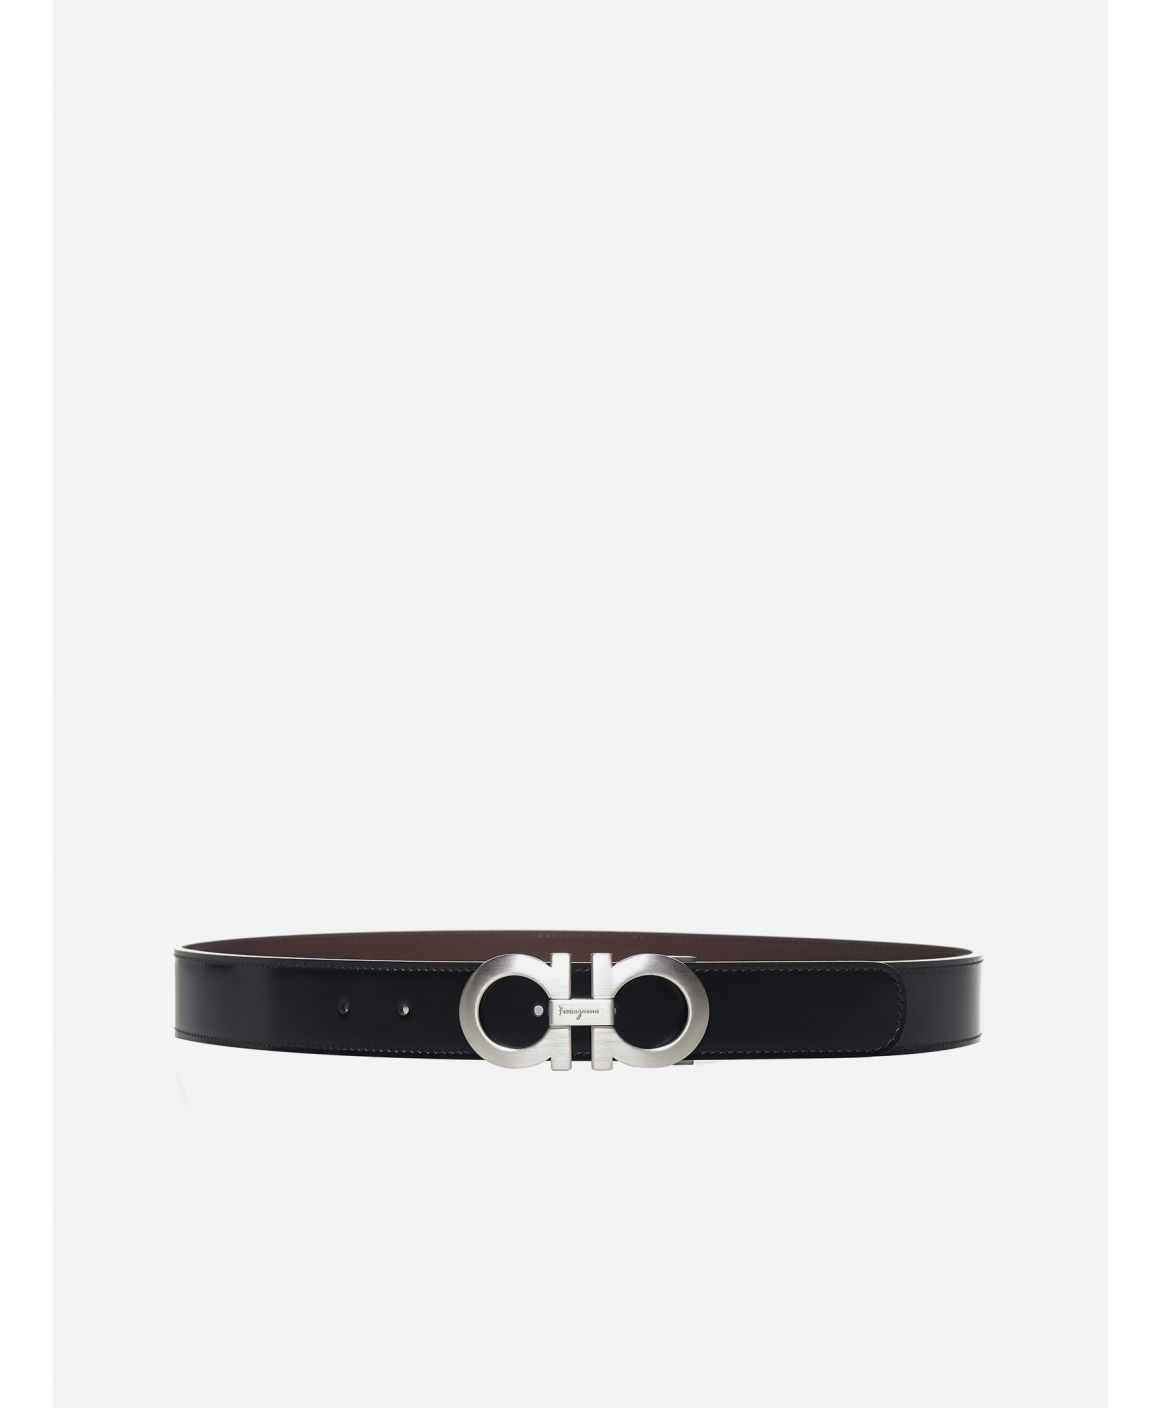 Gancini reversible leather belt